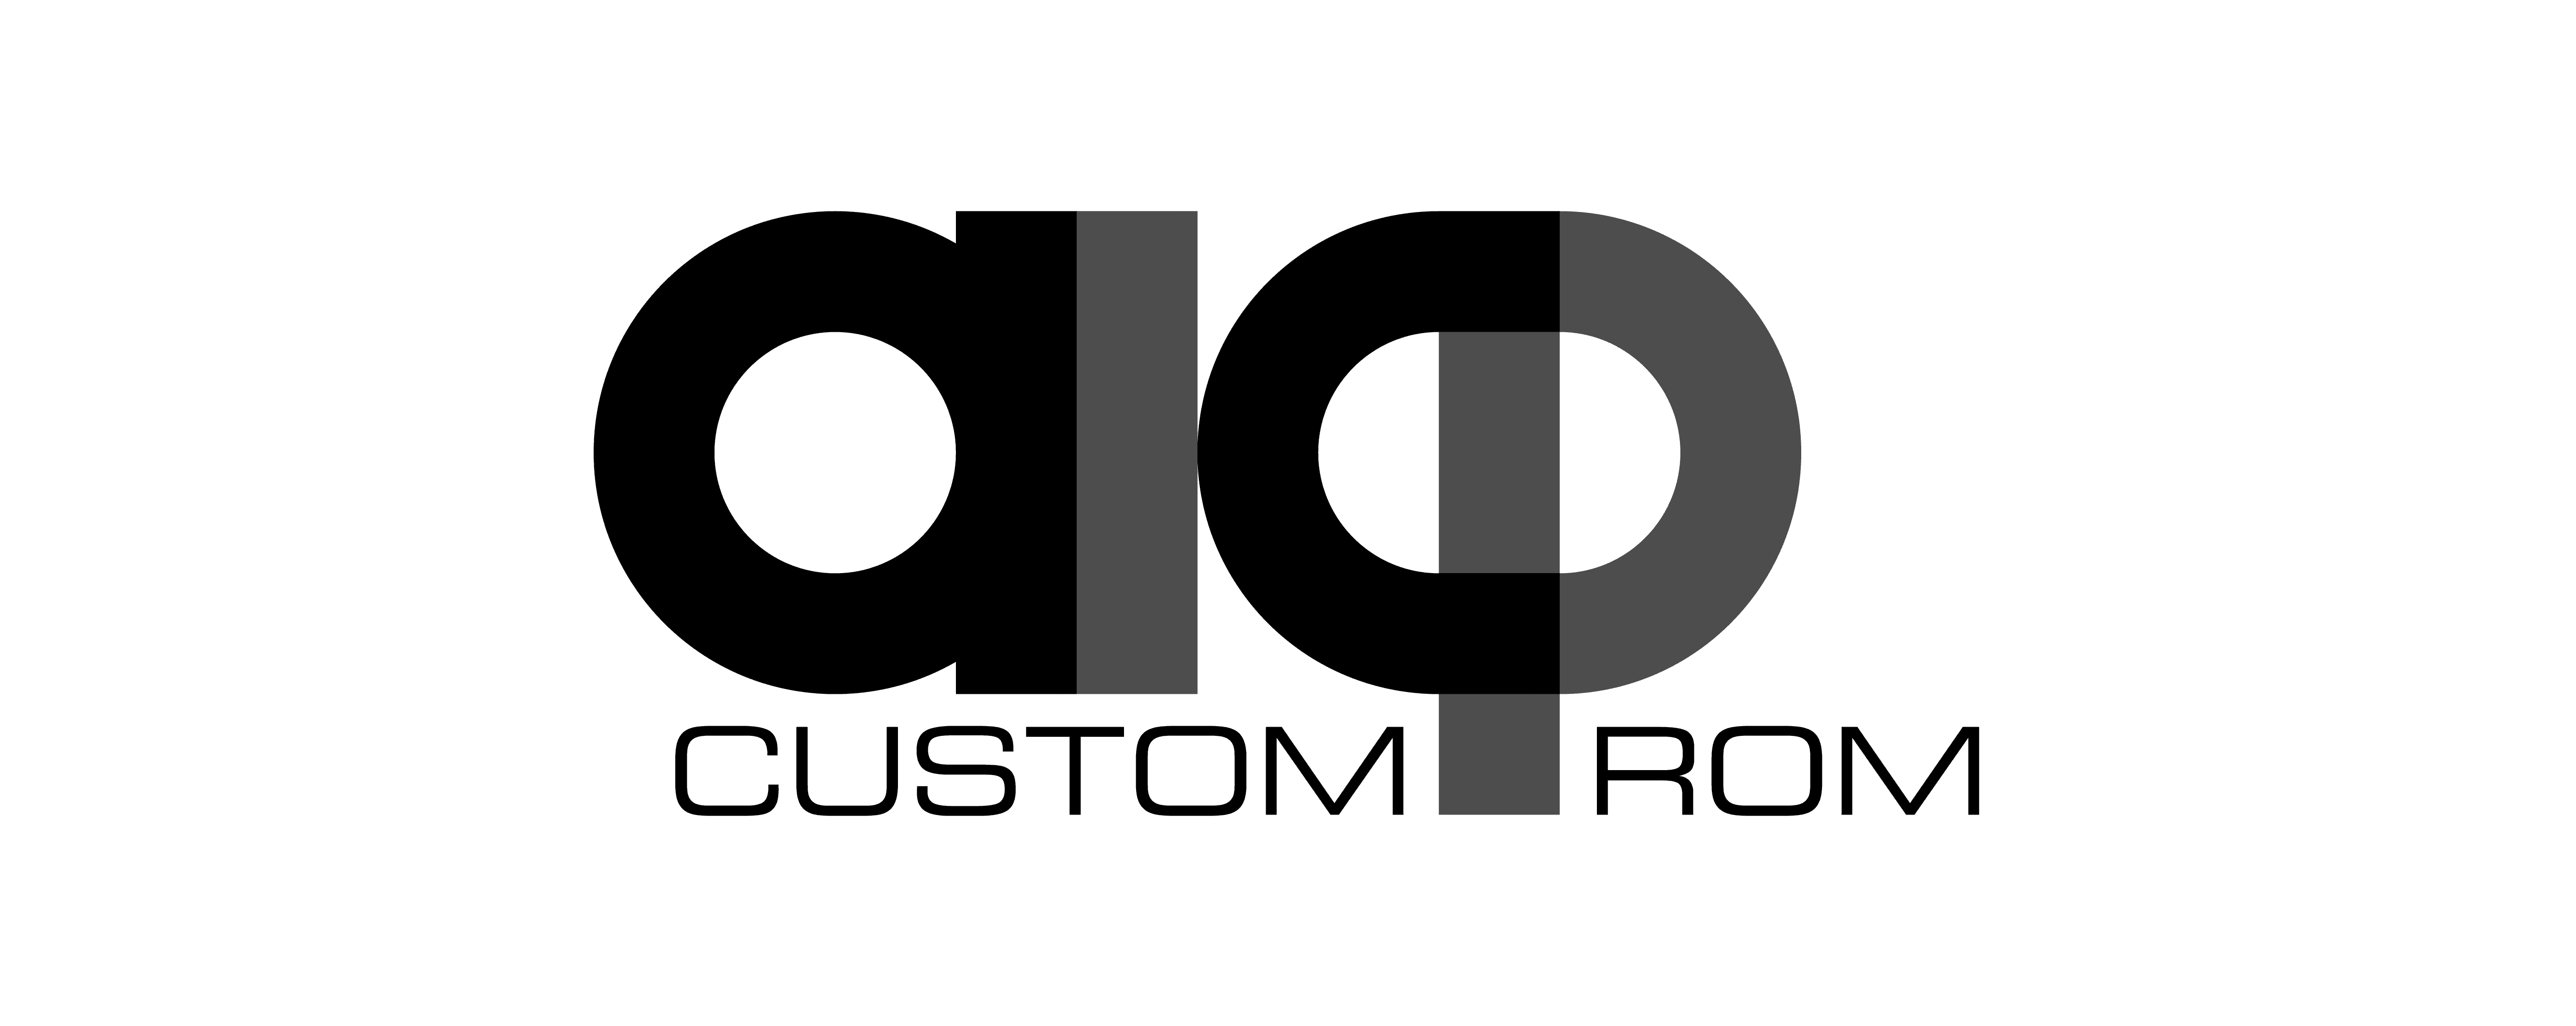 aicp_vector.png